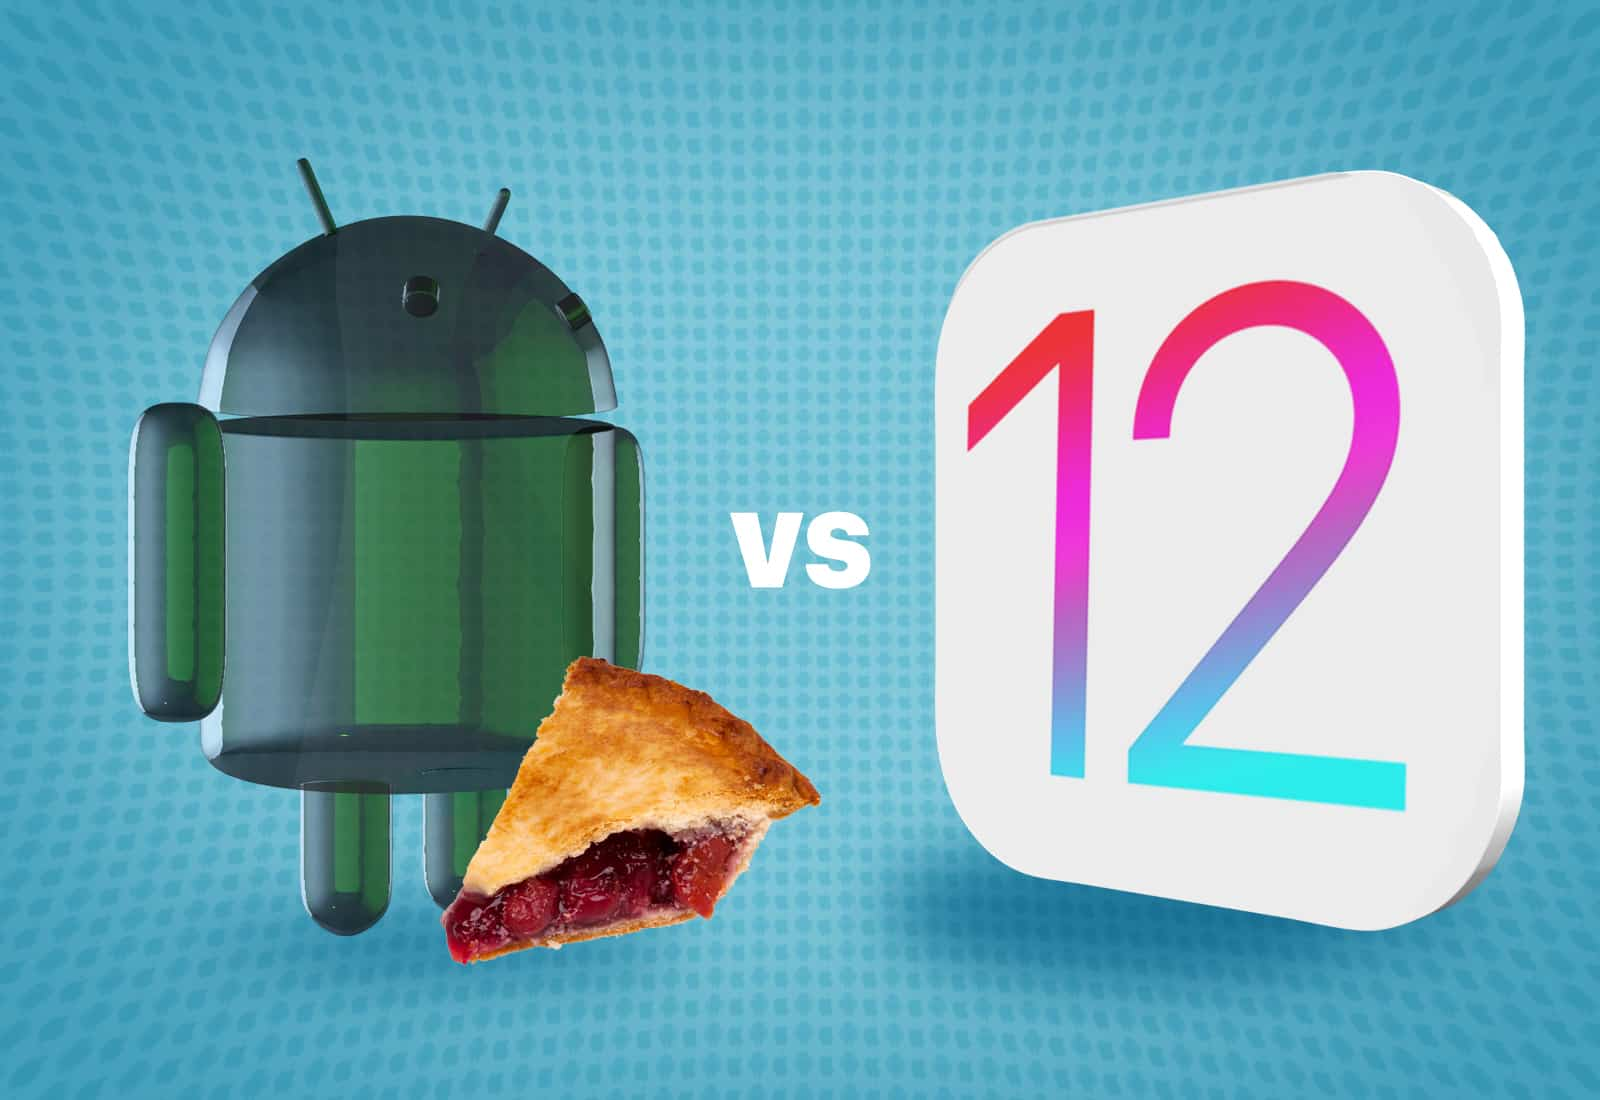 Which wins the features arms race, Android 9 Pie vs. iOS 12? Here's how they compare.